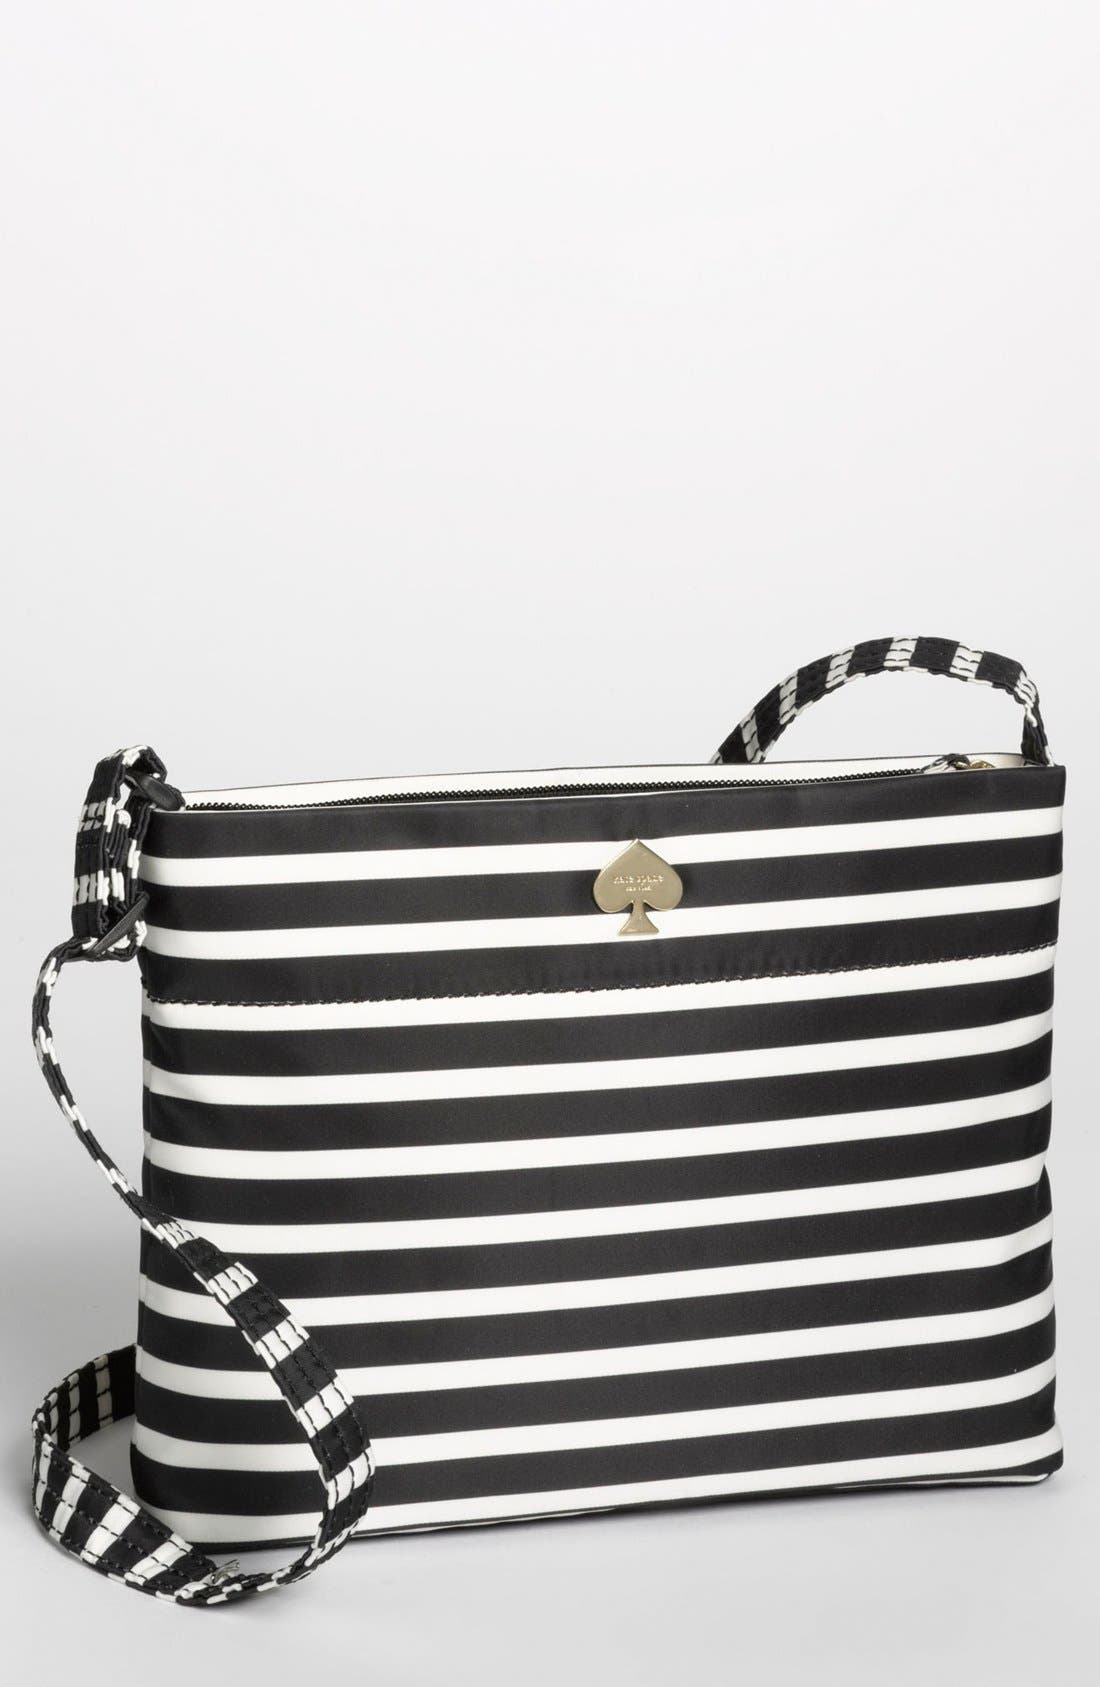 Alternate Image 1 Selected - kate spade new york 'flatiron - cammy' crossbody bag